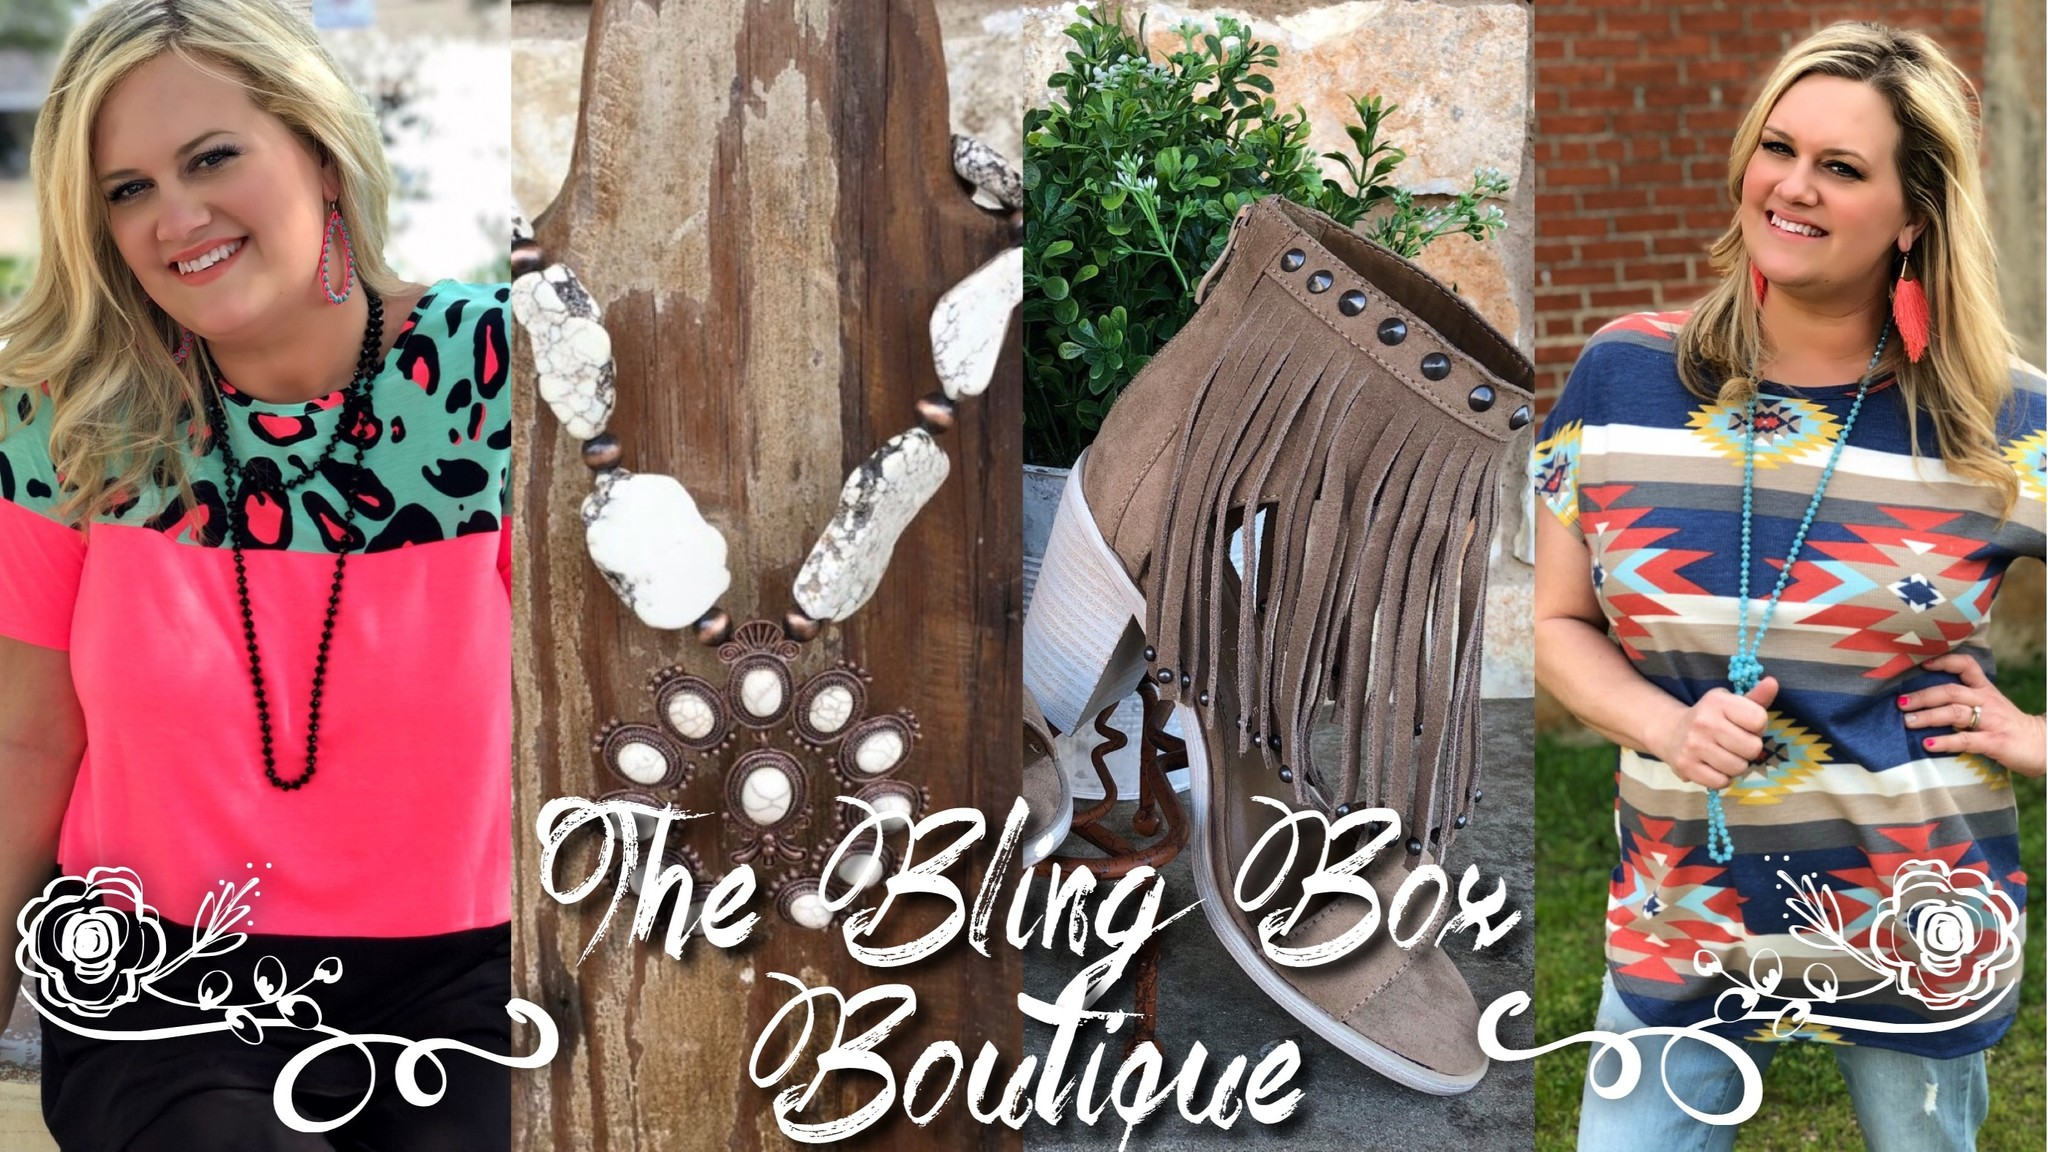 Women's Boutique Clothing Store Texas, Online Boutique Dress Shop, Bling Clothing